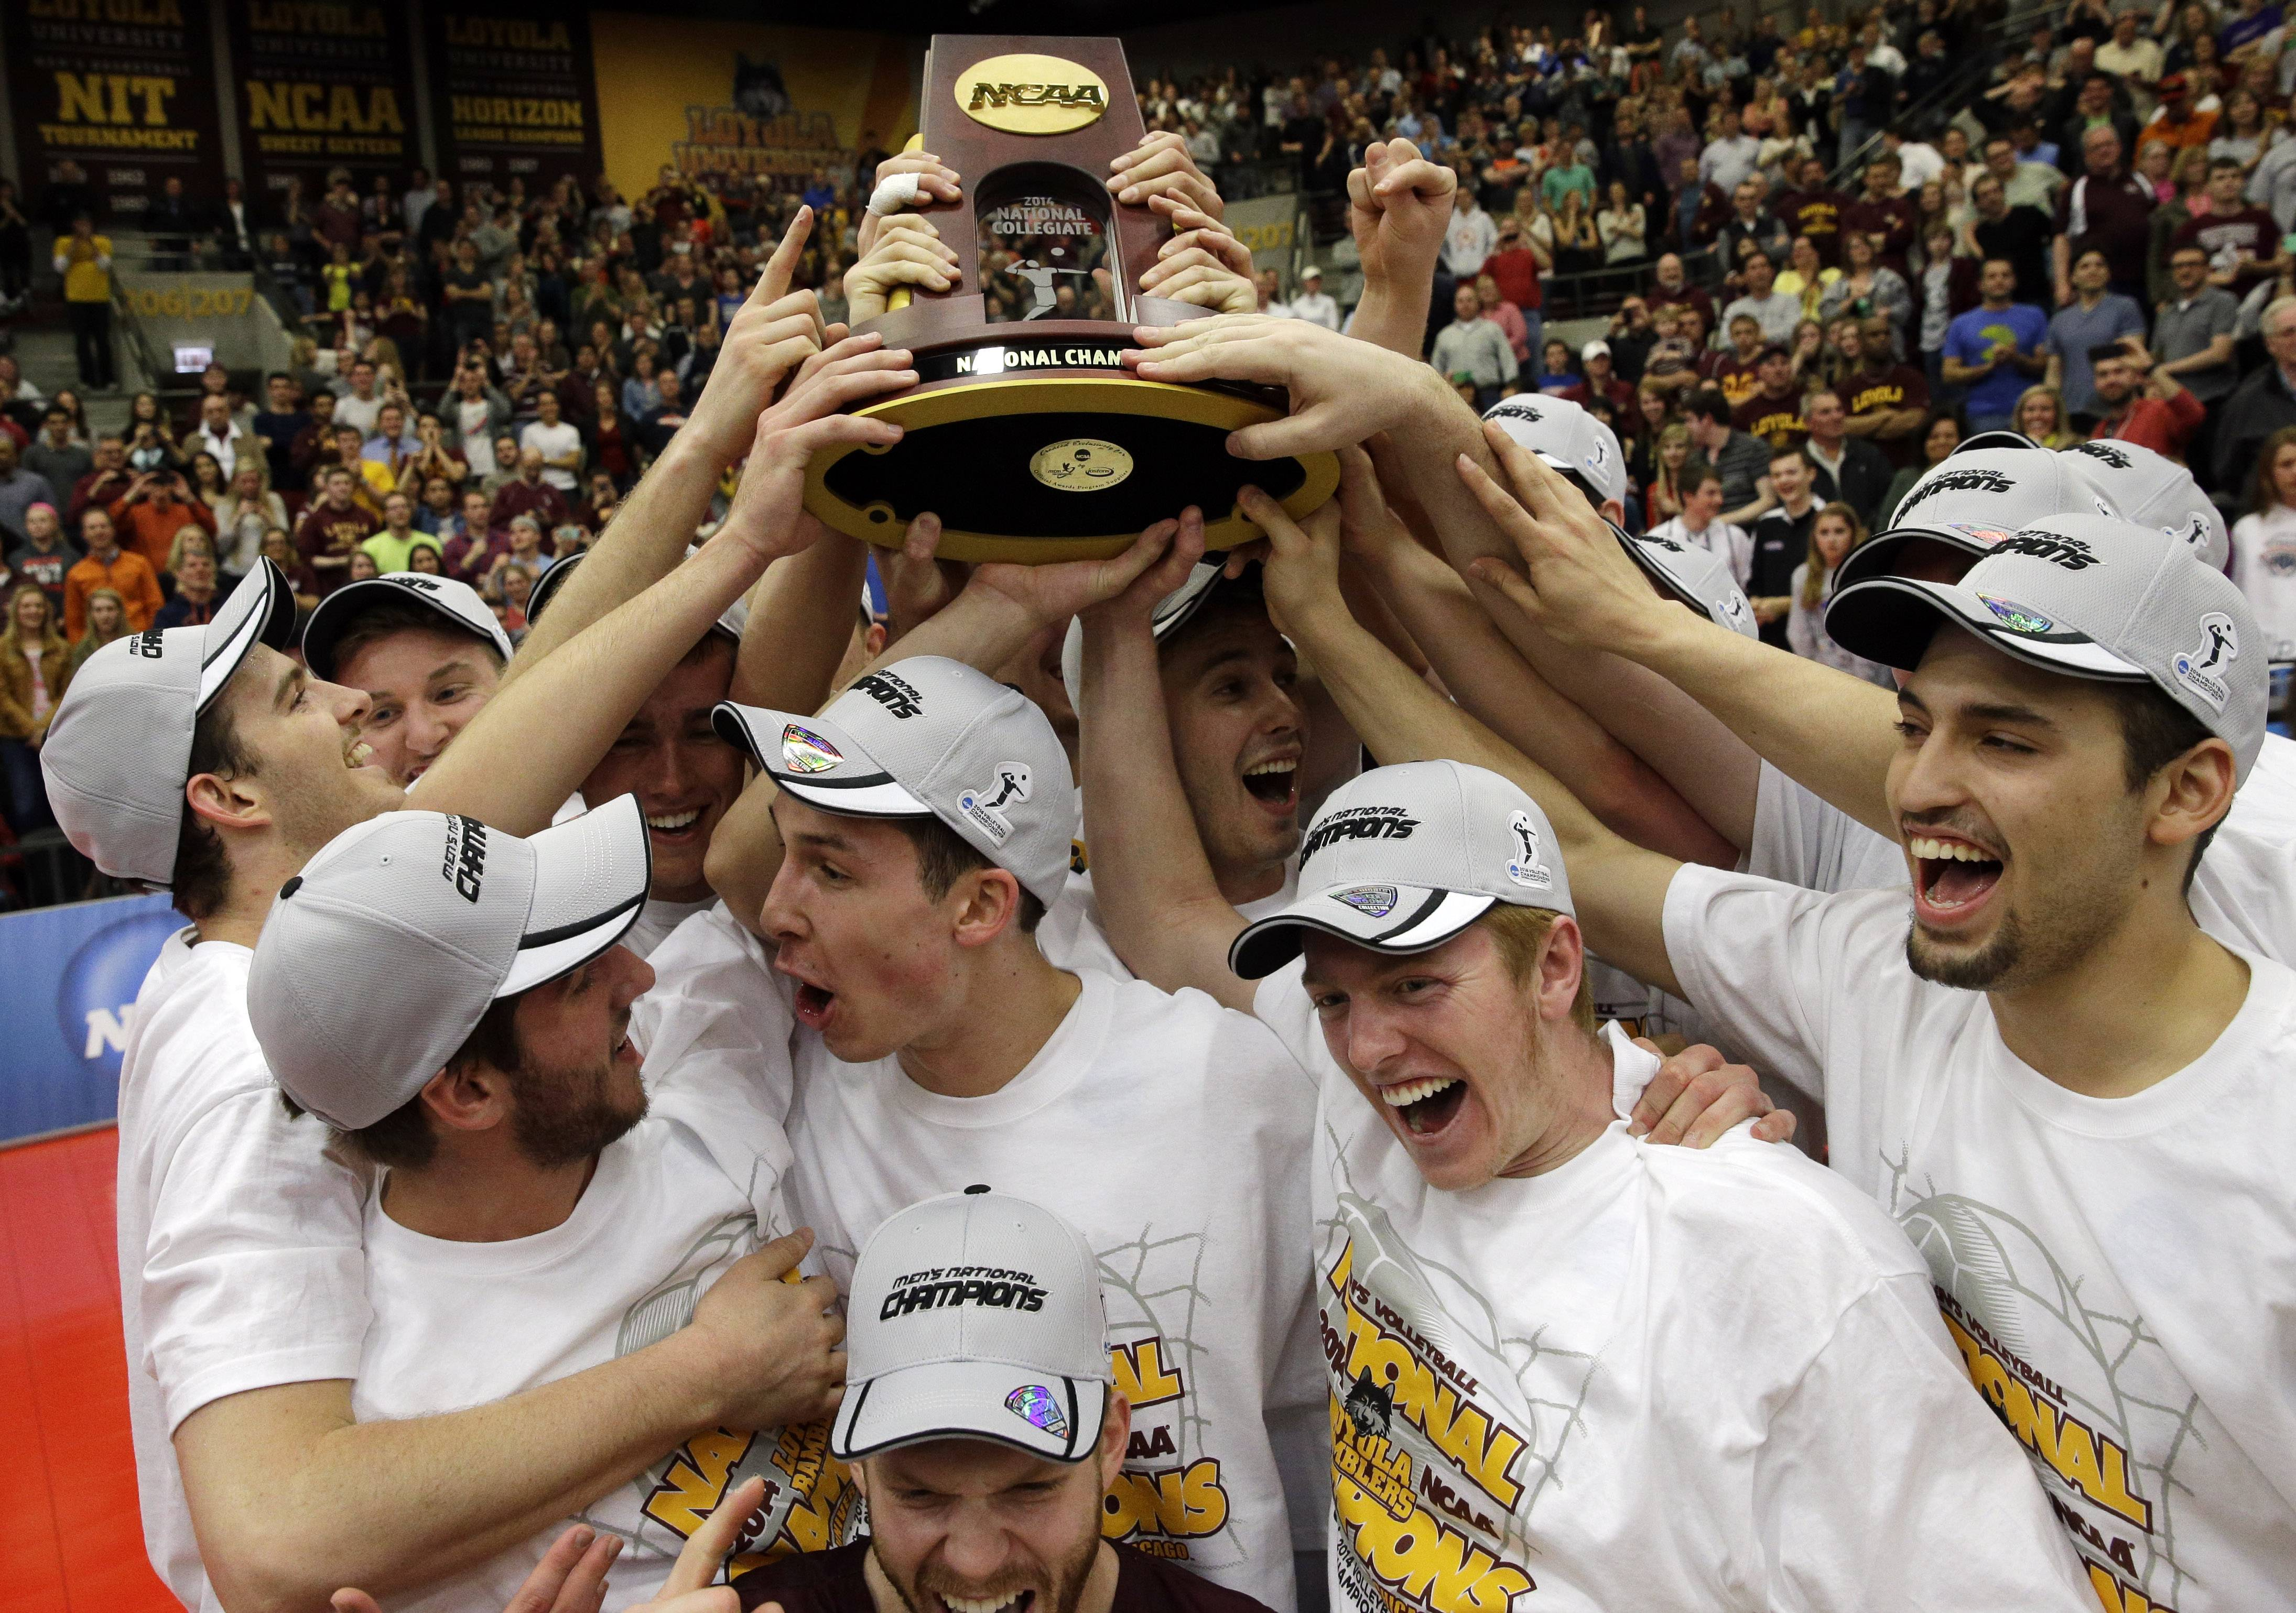 Loyola players celebrate as they hold the championship trophy after defeating Stanford 3-1 in the NCAA men's college volleyball championship at Gentile Arena in Chicago on Saturday, May 3, 2014.